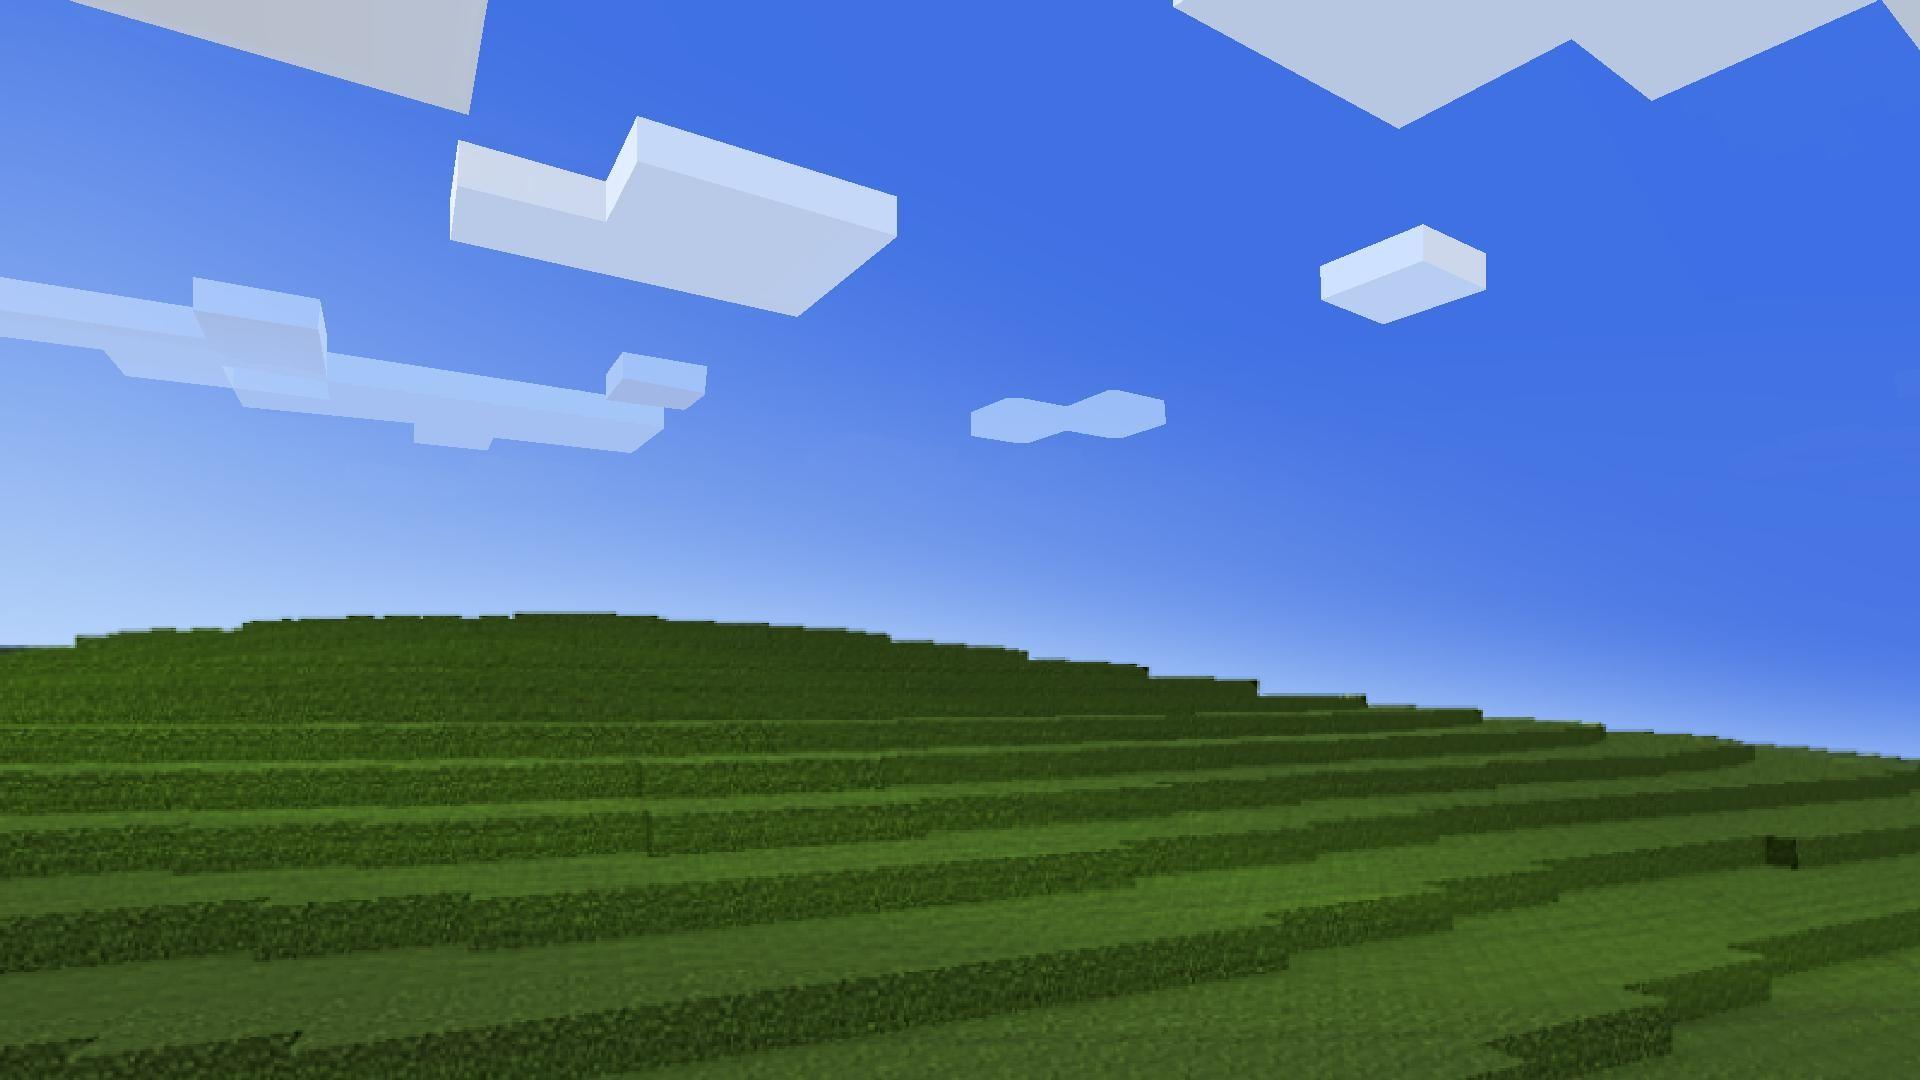 Windows Wallpapers Location (31 Wallpapers)